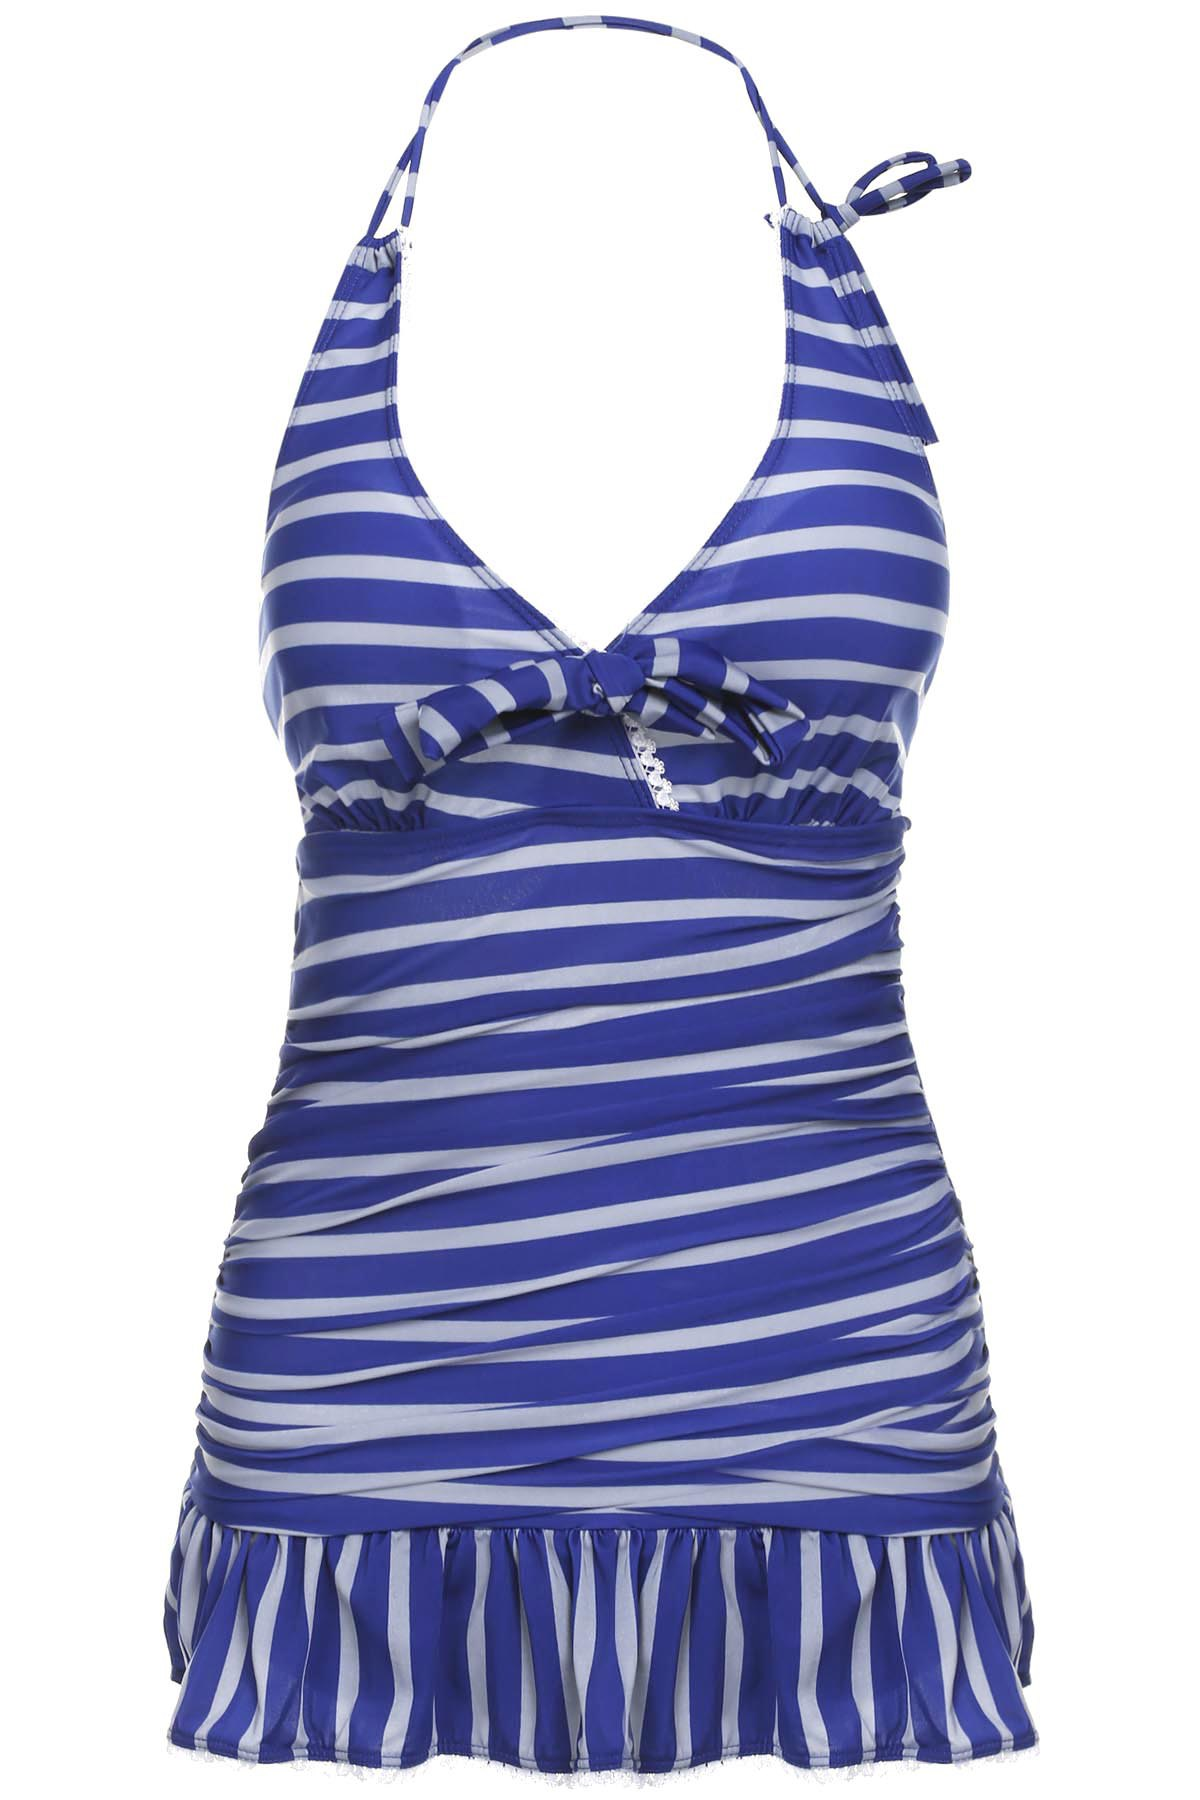 Navy Style Halter Neck Striped Color Matching Bowtie Embellished Ruffled Women's Swimwear - STRIPES M